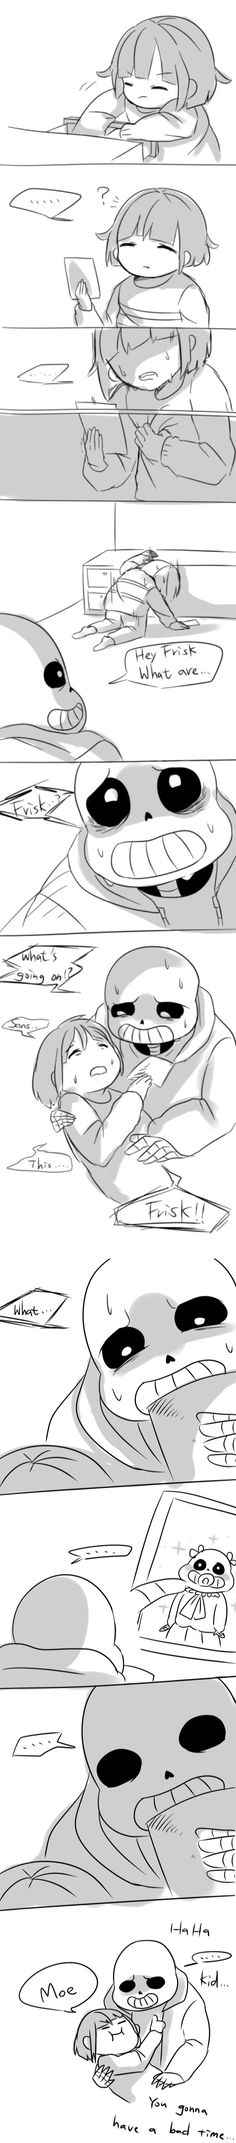 Frisk and Sans - comic - lol